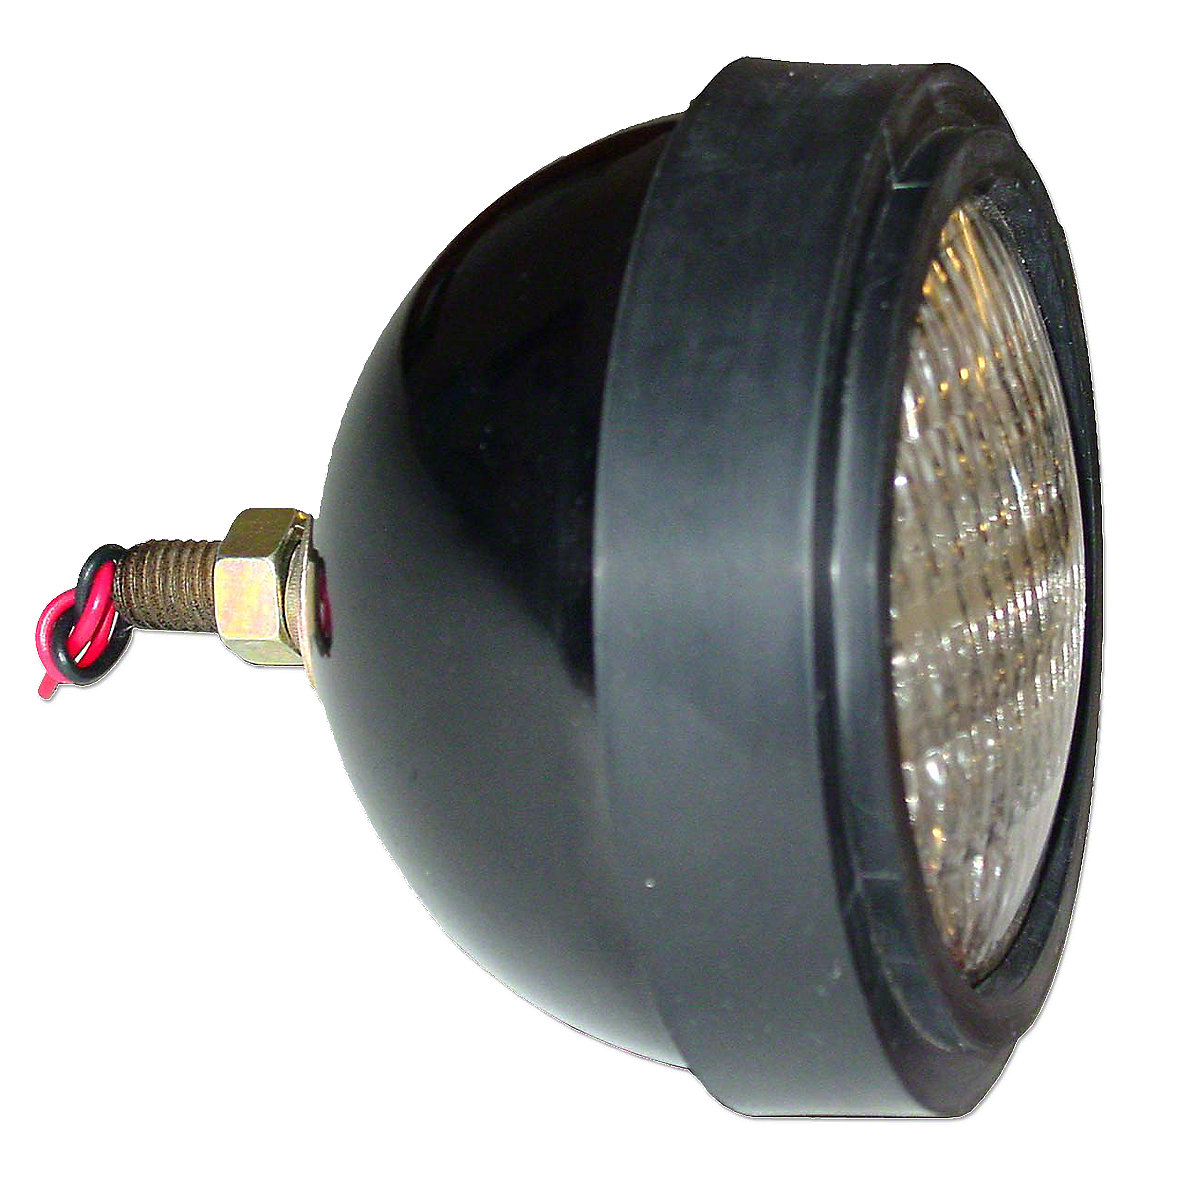 12 VOLT SEALED BEAM HEADLIGHT ASSEMBLY --- Oliver Applications: OLIVER MODELS 770 & UP --- INCLUDES SEALED BEAM BULB #4411 & RUBBER TRIM RING --- FOR FLAT TOP FENDERS --- NOTE: POST IS OUT OF BACK WITH WIRES THRU POST